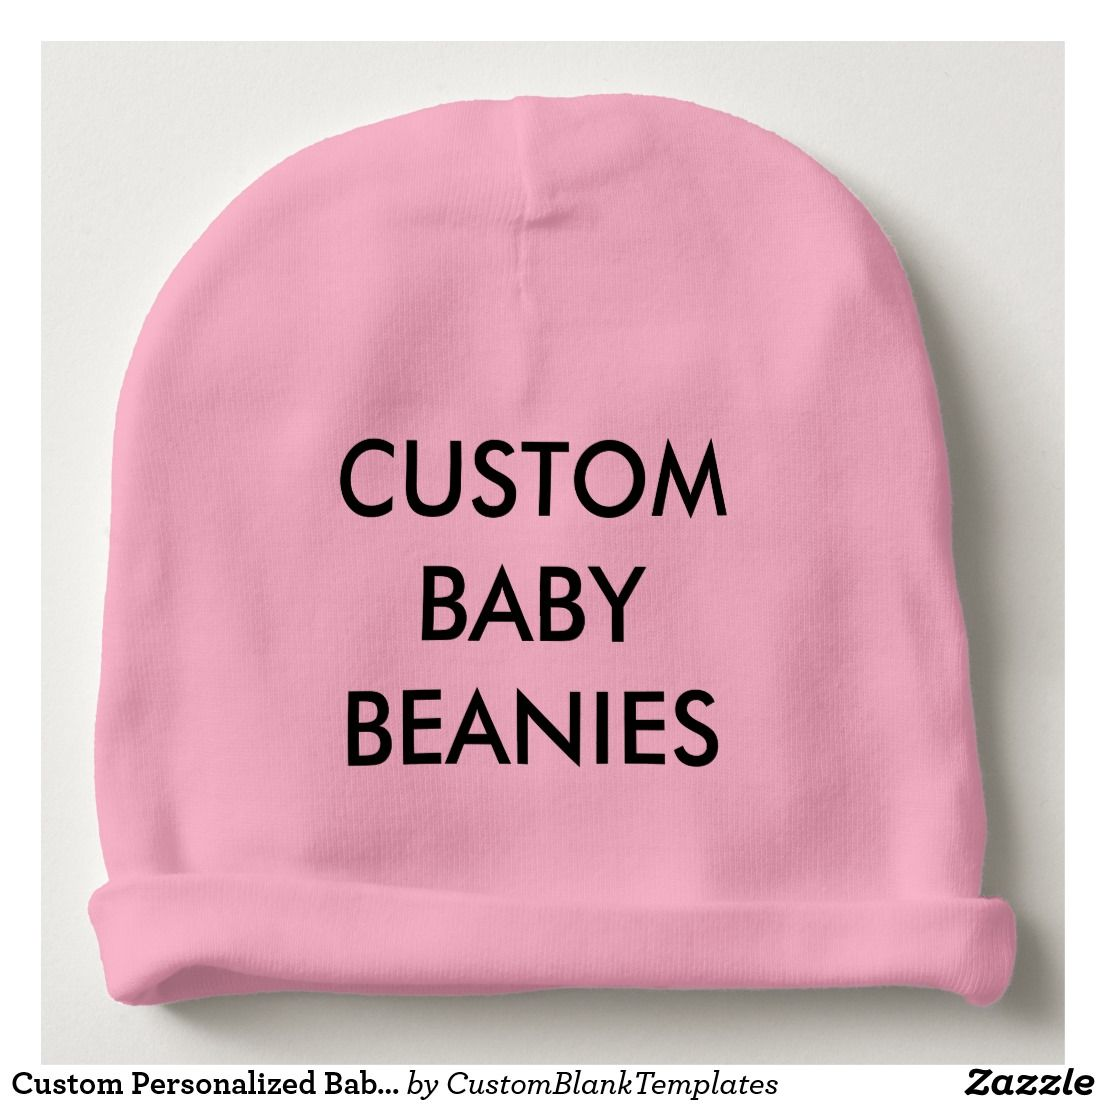 Custom Personalized Baby Beanie Hat Blank Template | Baby beanie hats